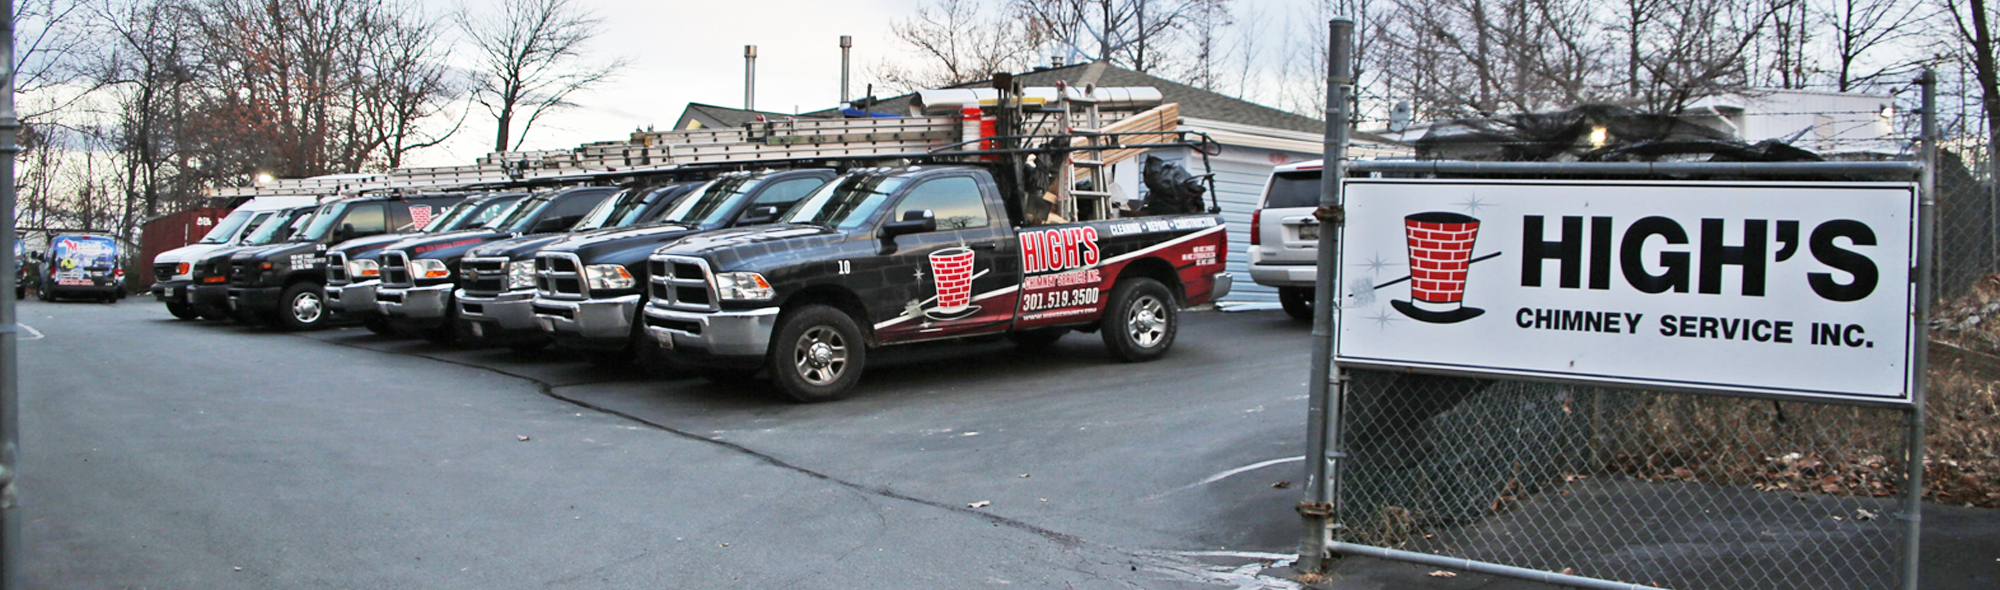 chevy chase md chimney sweep and chimney repair service